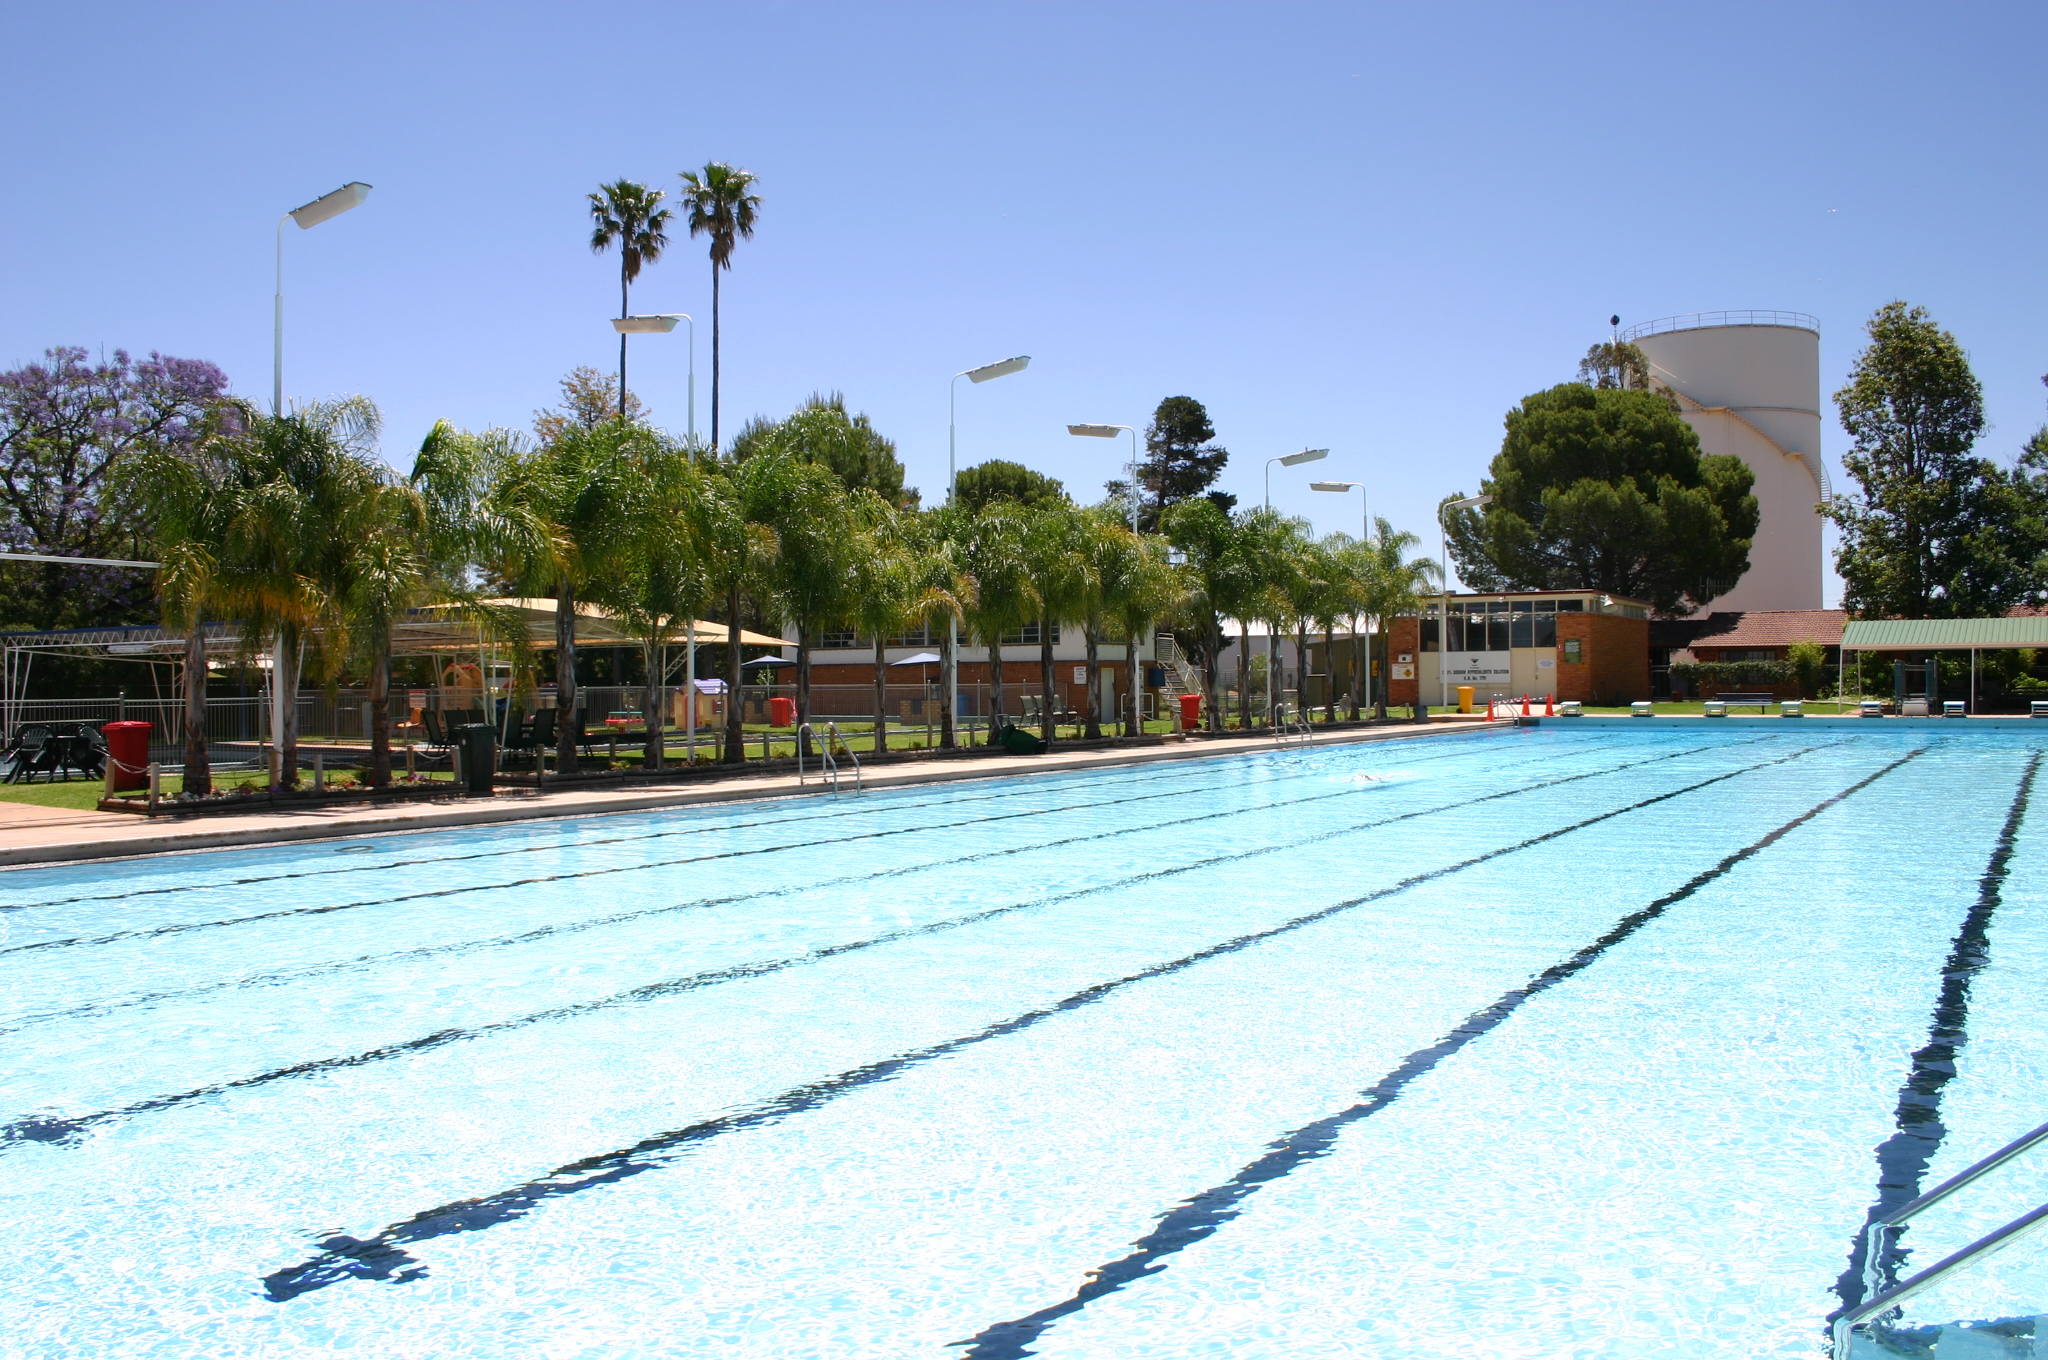 Narromine Shire Council seeking community feedback on the Aquatic Centres